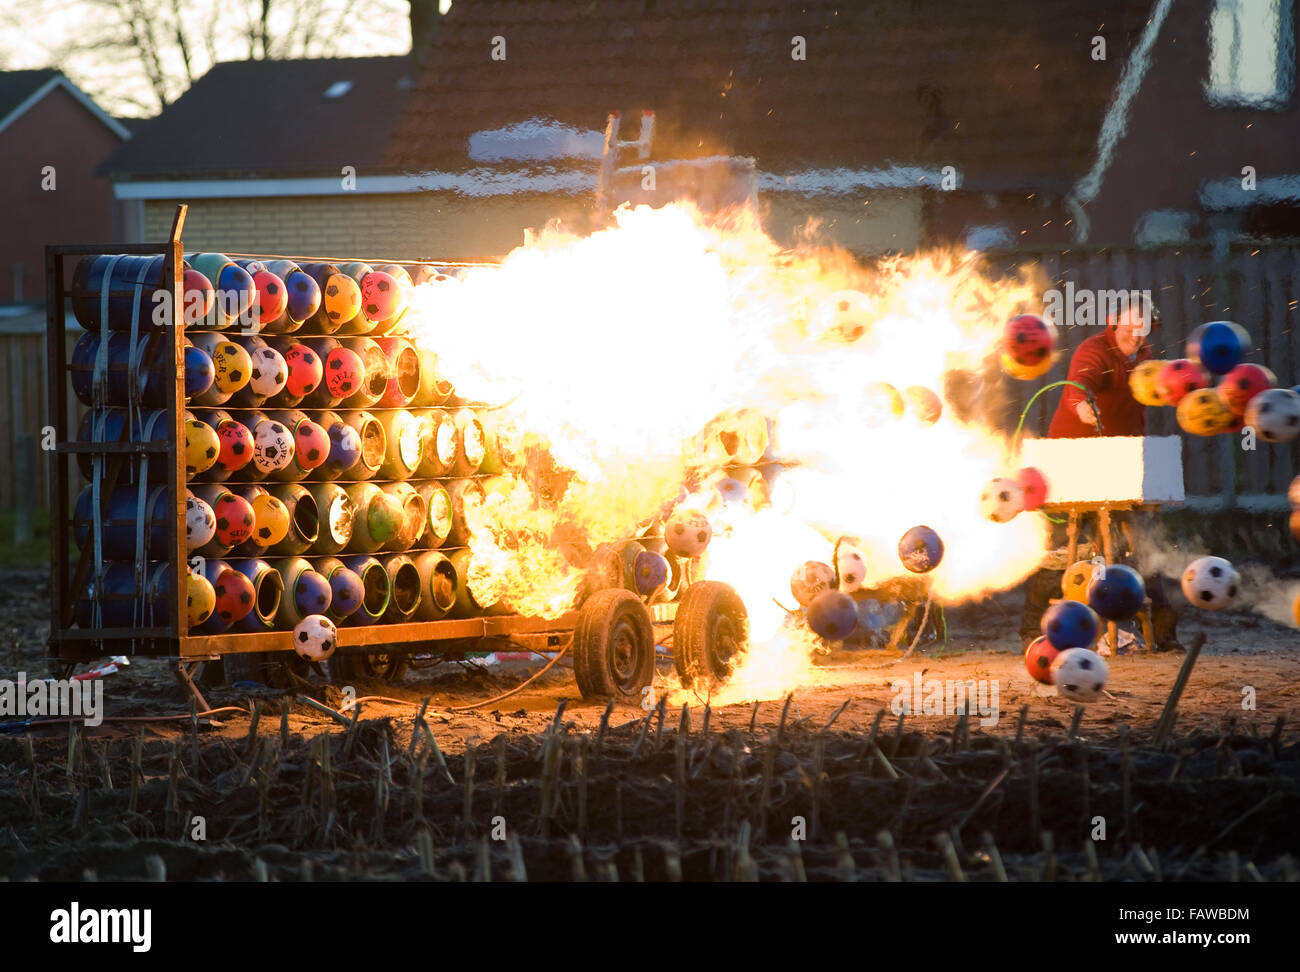 ENSCHEDE, NETHERLANDS - DEC 31, 2015: Carbide exploding is a tradition on new year's eve in The Netherlands - Stock Image